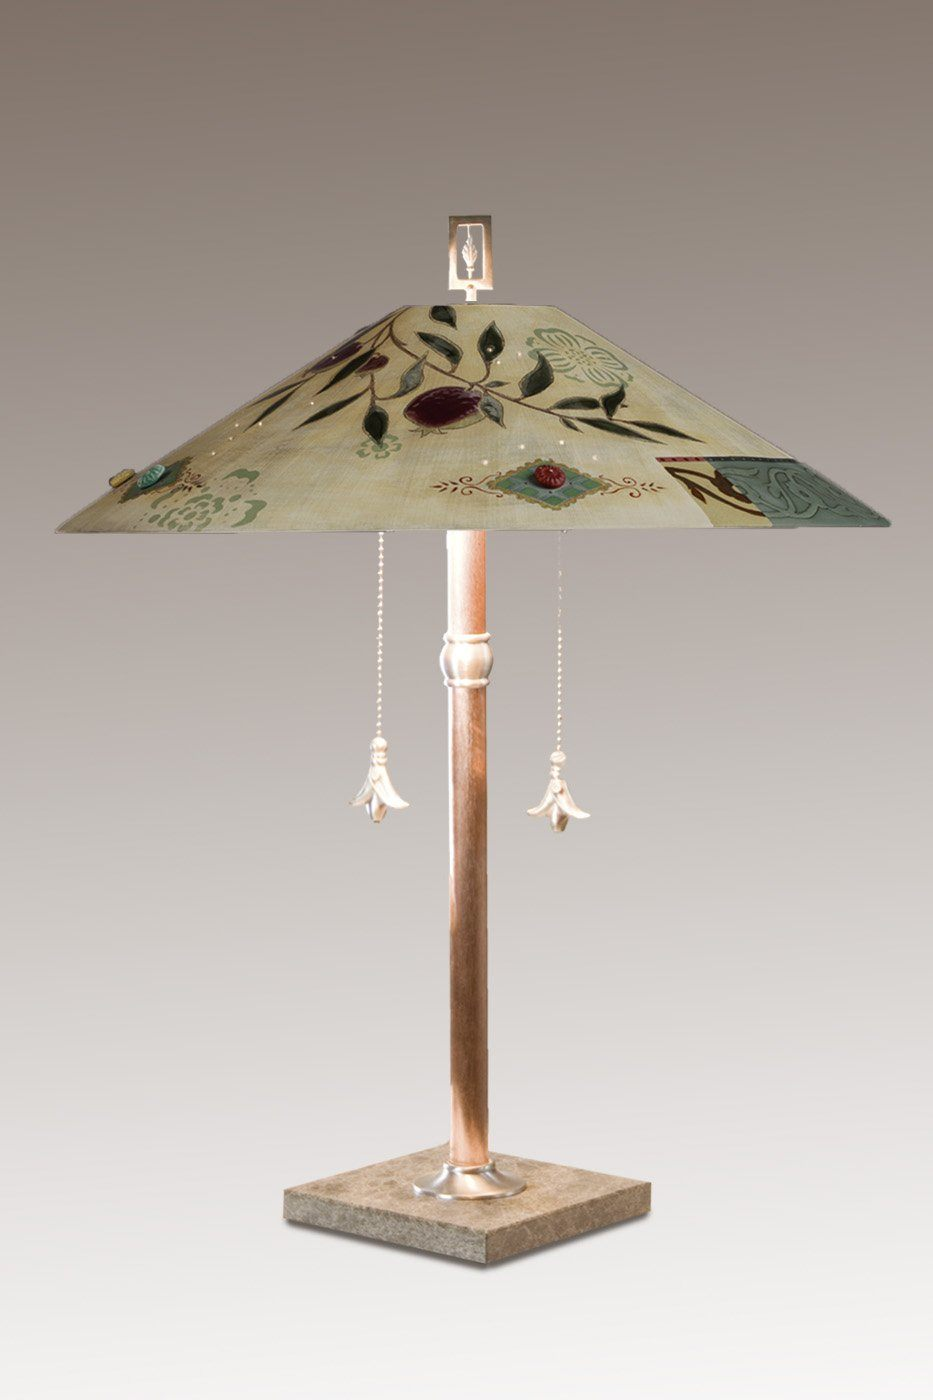 Copper Table Lamp with Large Wide Conical Ceramic Shade in Pomegranate